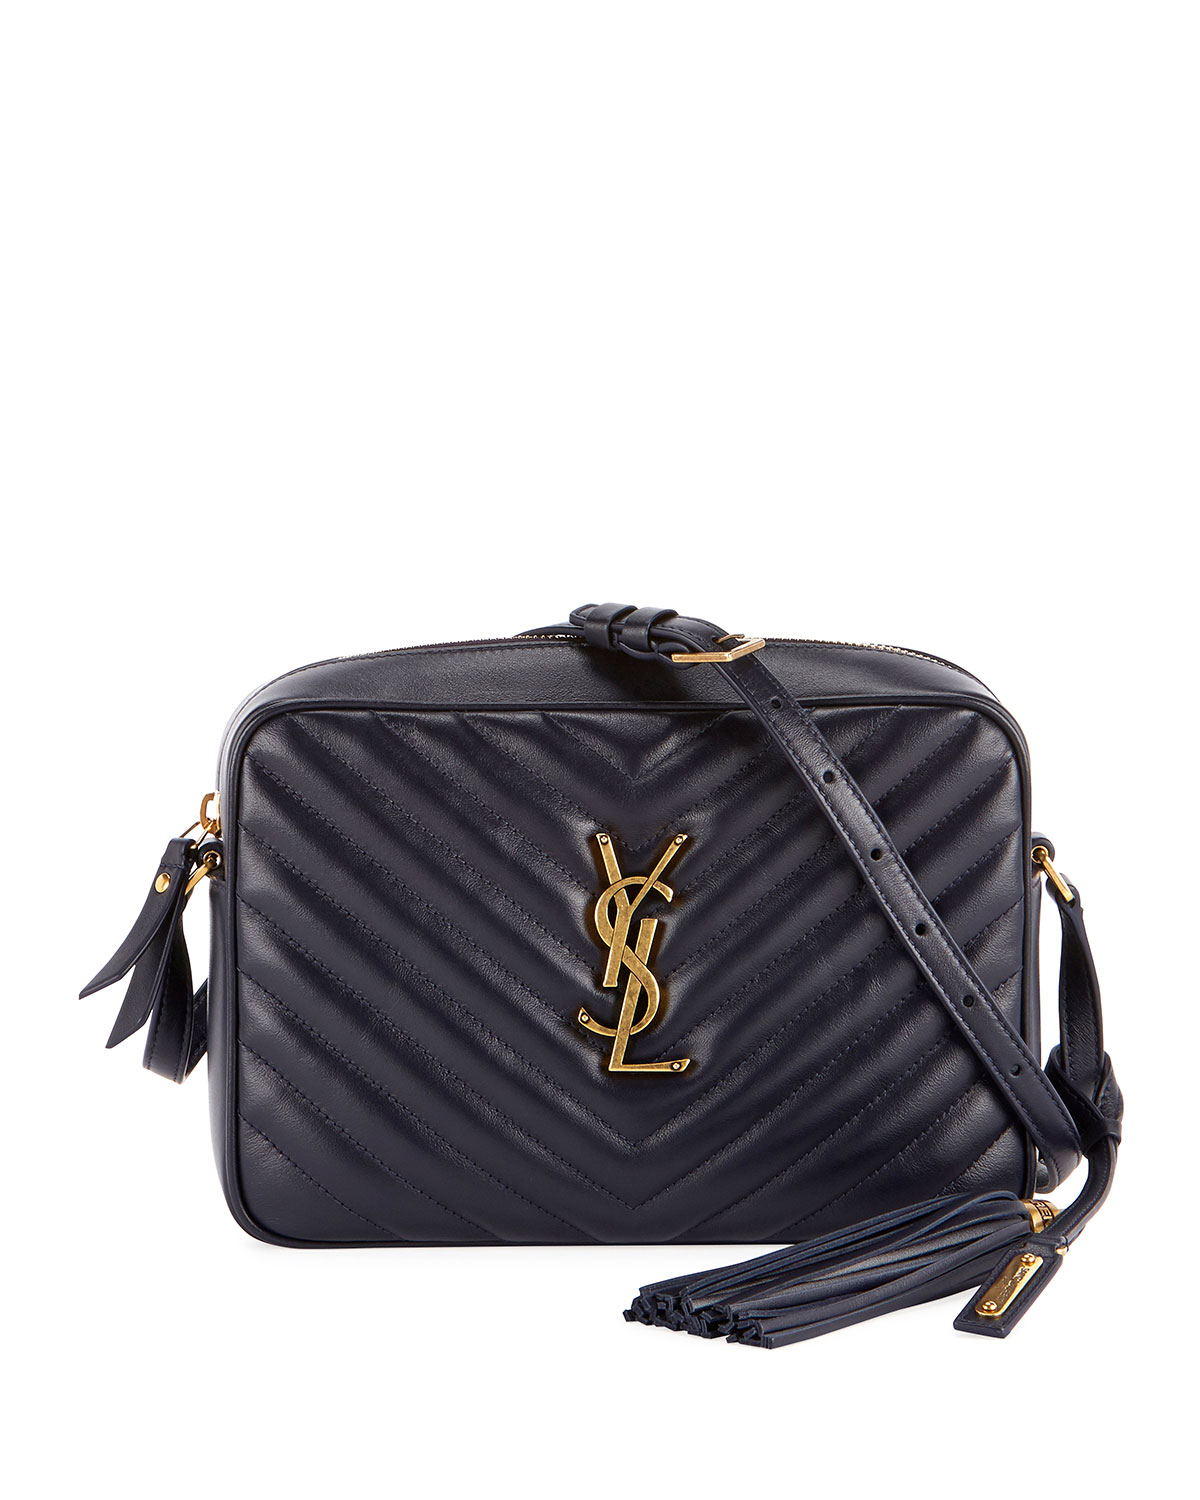 d4d3e33bf Saint Laurent Loulou Monogram YSL Medium Chevron Quilted Leather Camera Shoulder  Bag - Brilliant Golden Hardware